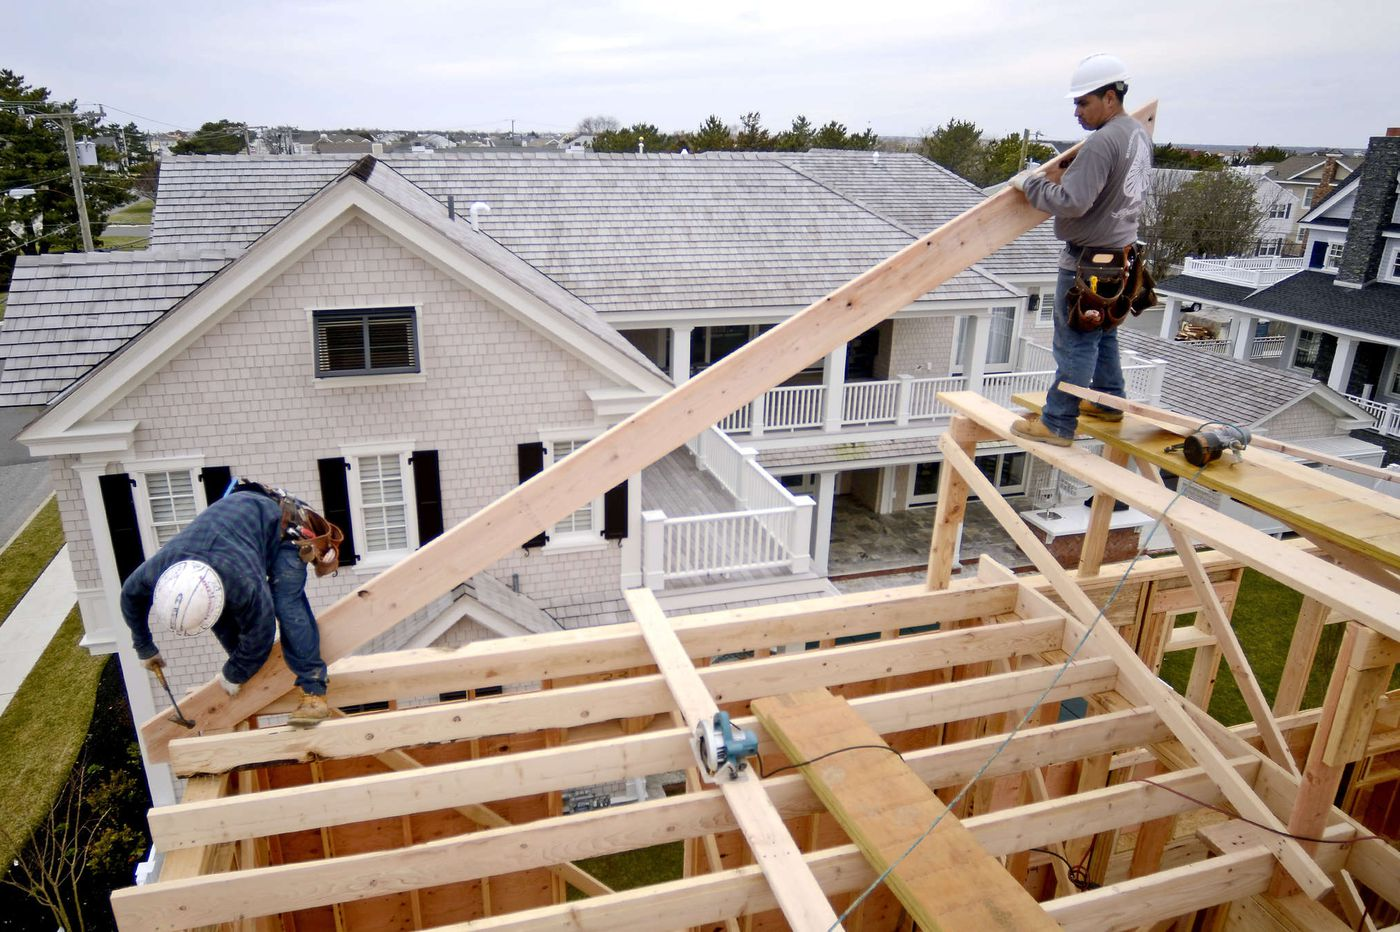 What's driving that surge in new-home construction?